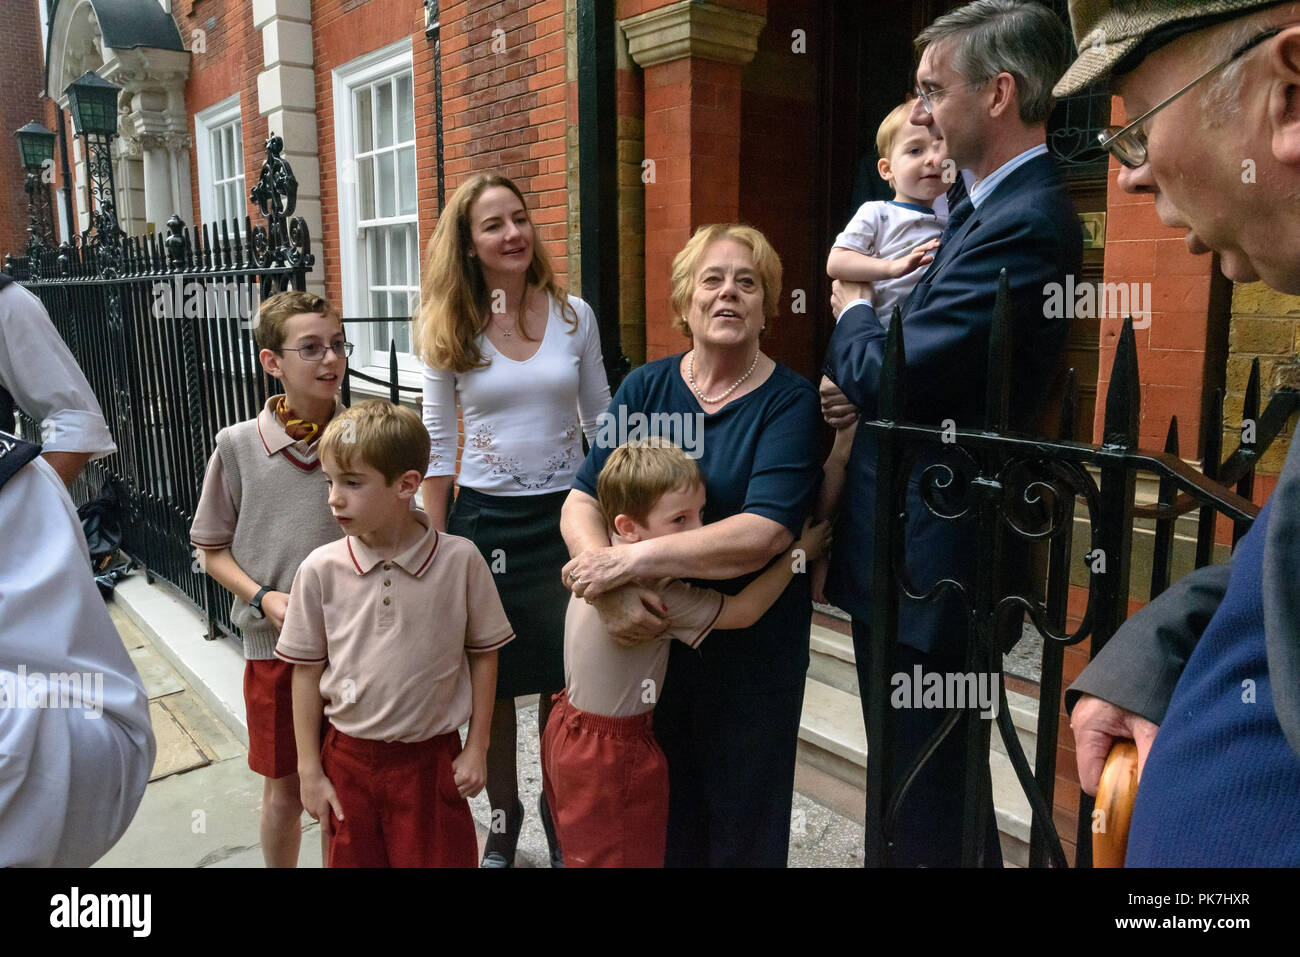 London, UK. 11th Sept 2018. Jacob Rees-Mogg with his wife, Nanny Cook and four of his six children as Ian Bone of Class War speaks to them outside his £5.6m Westminster town house calling for the release of Veronica Cook, who now looks after him and his six children, one of whom stands with his wife watching. They say she ceased to exist as an independent human 50 years ago and has been subsumed into the Mogg family as if she was being confined in the tower of a gothic mansion. The protest starred former Class War Westminster candidate Adam Clifford as Jacob Rees-Mogg and Jane Nicholl as NannyStock Photo